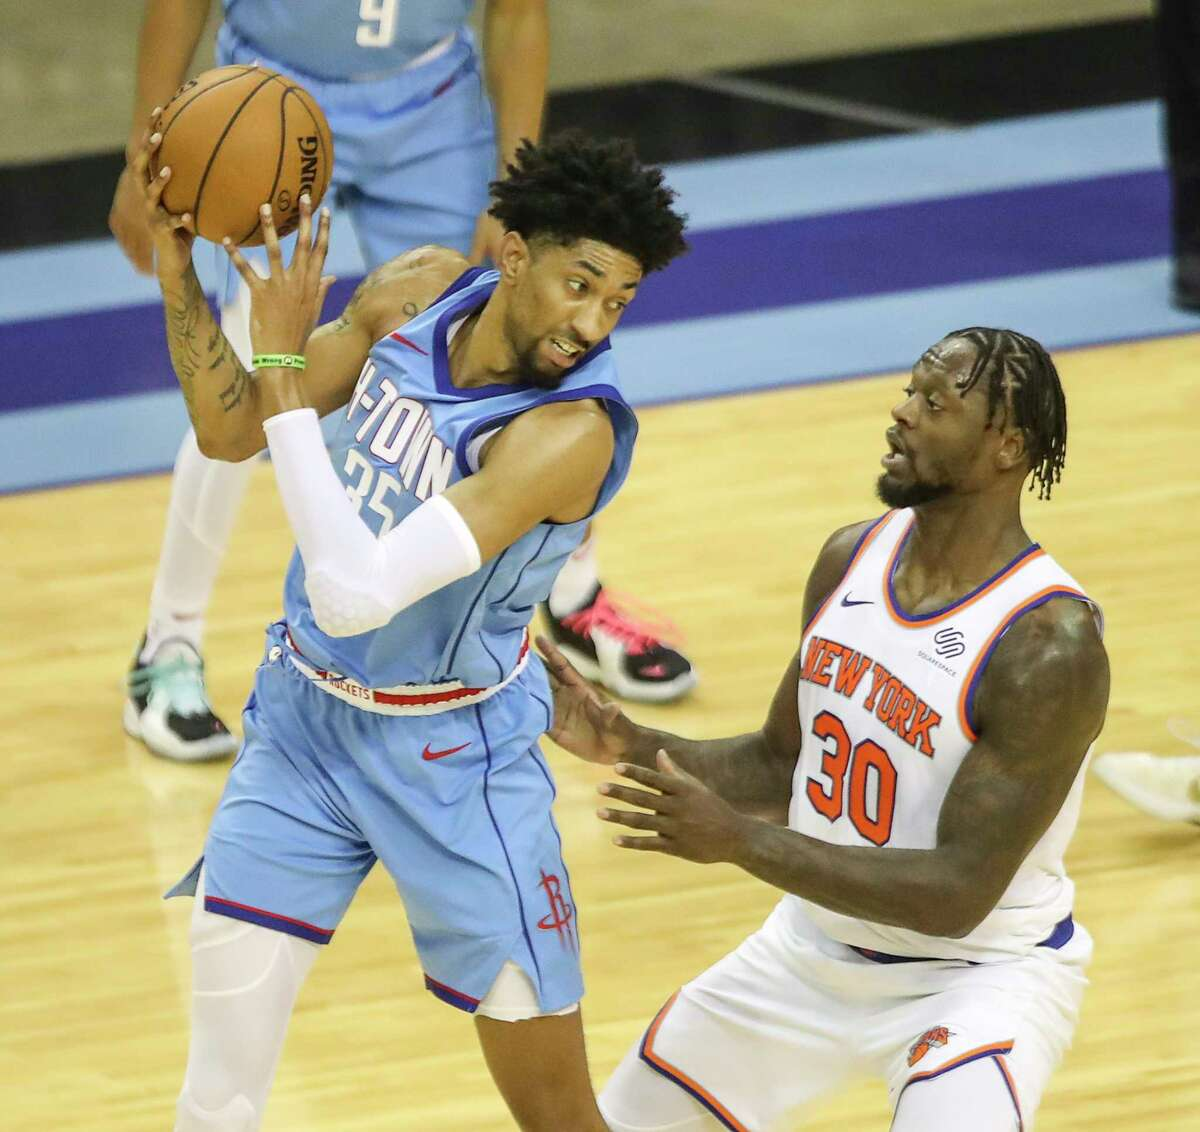 Rockets center Christian Wood finished fourth in the NBA's Most Improved Player balloting behind the Knicks' Julius Randle (right), the runaway winner.